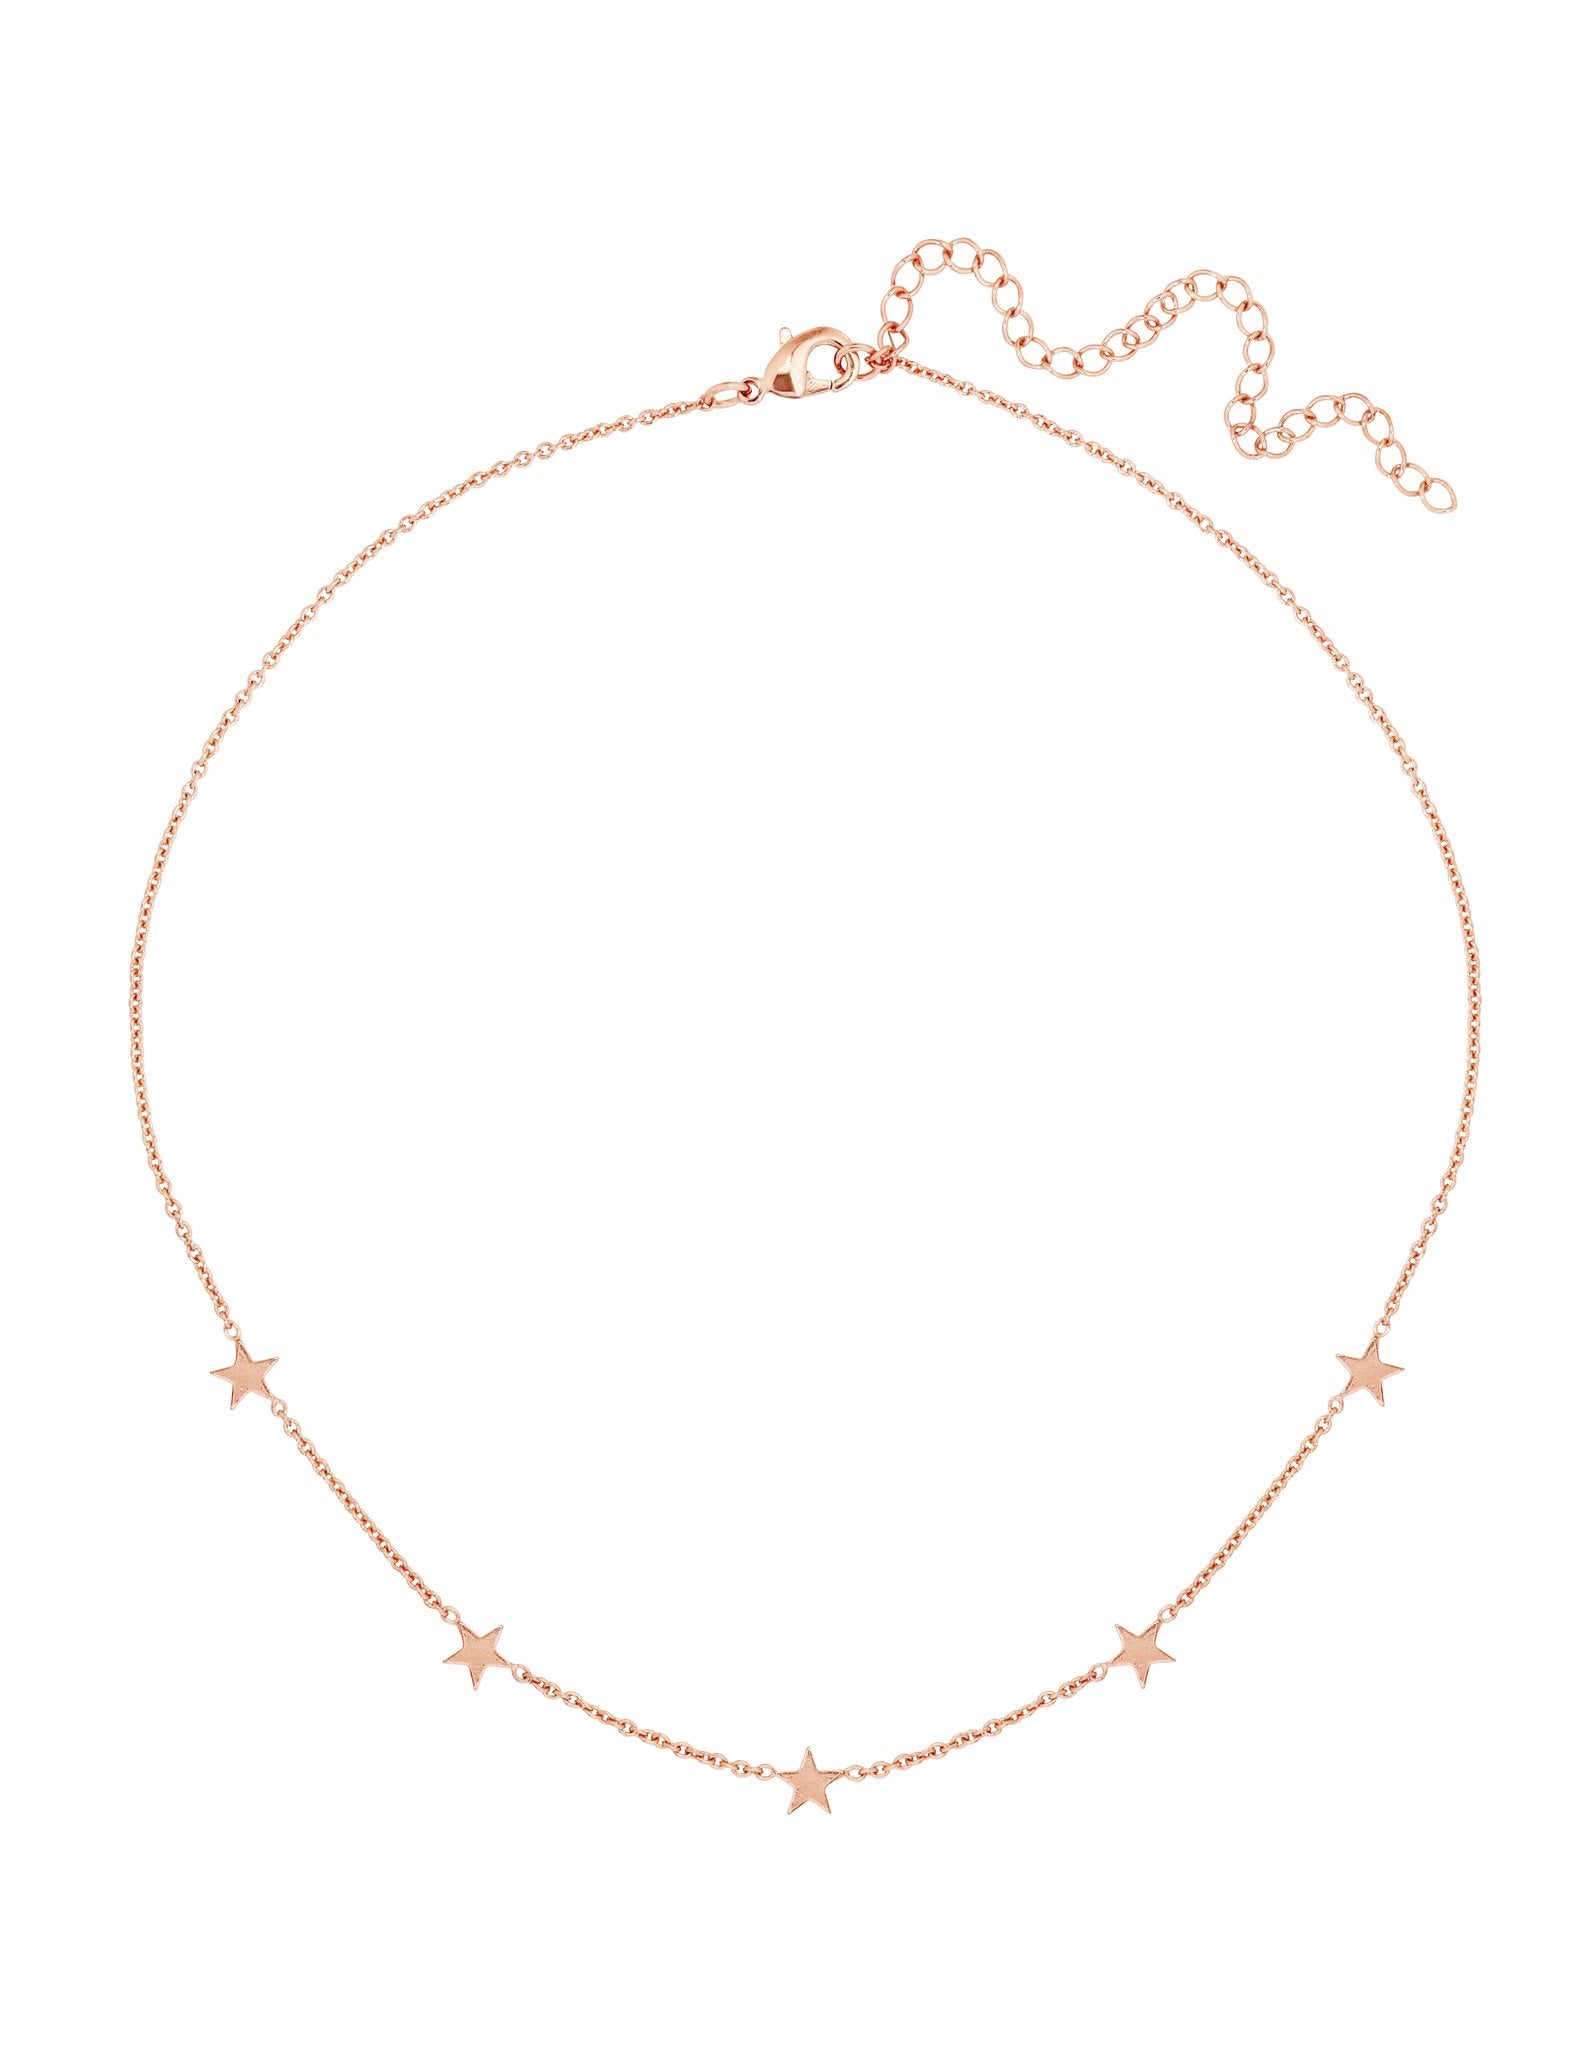 Women outfit in a necklace rental from Five and Two called Paige Rose Gold Choker Necklace